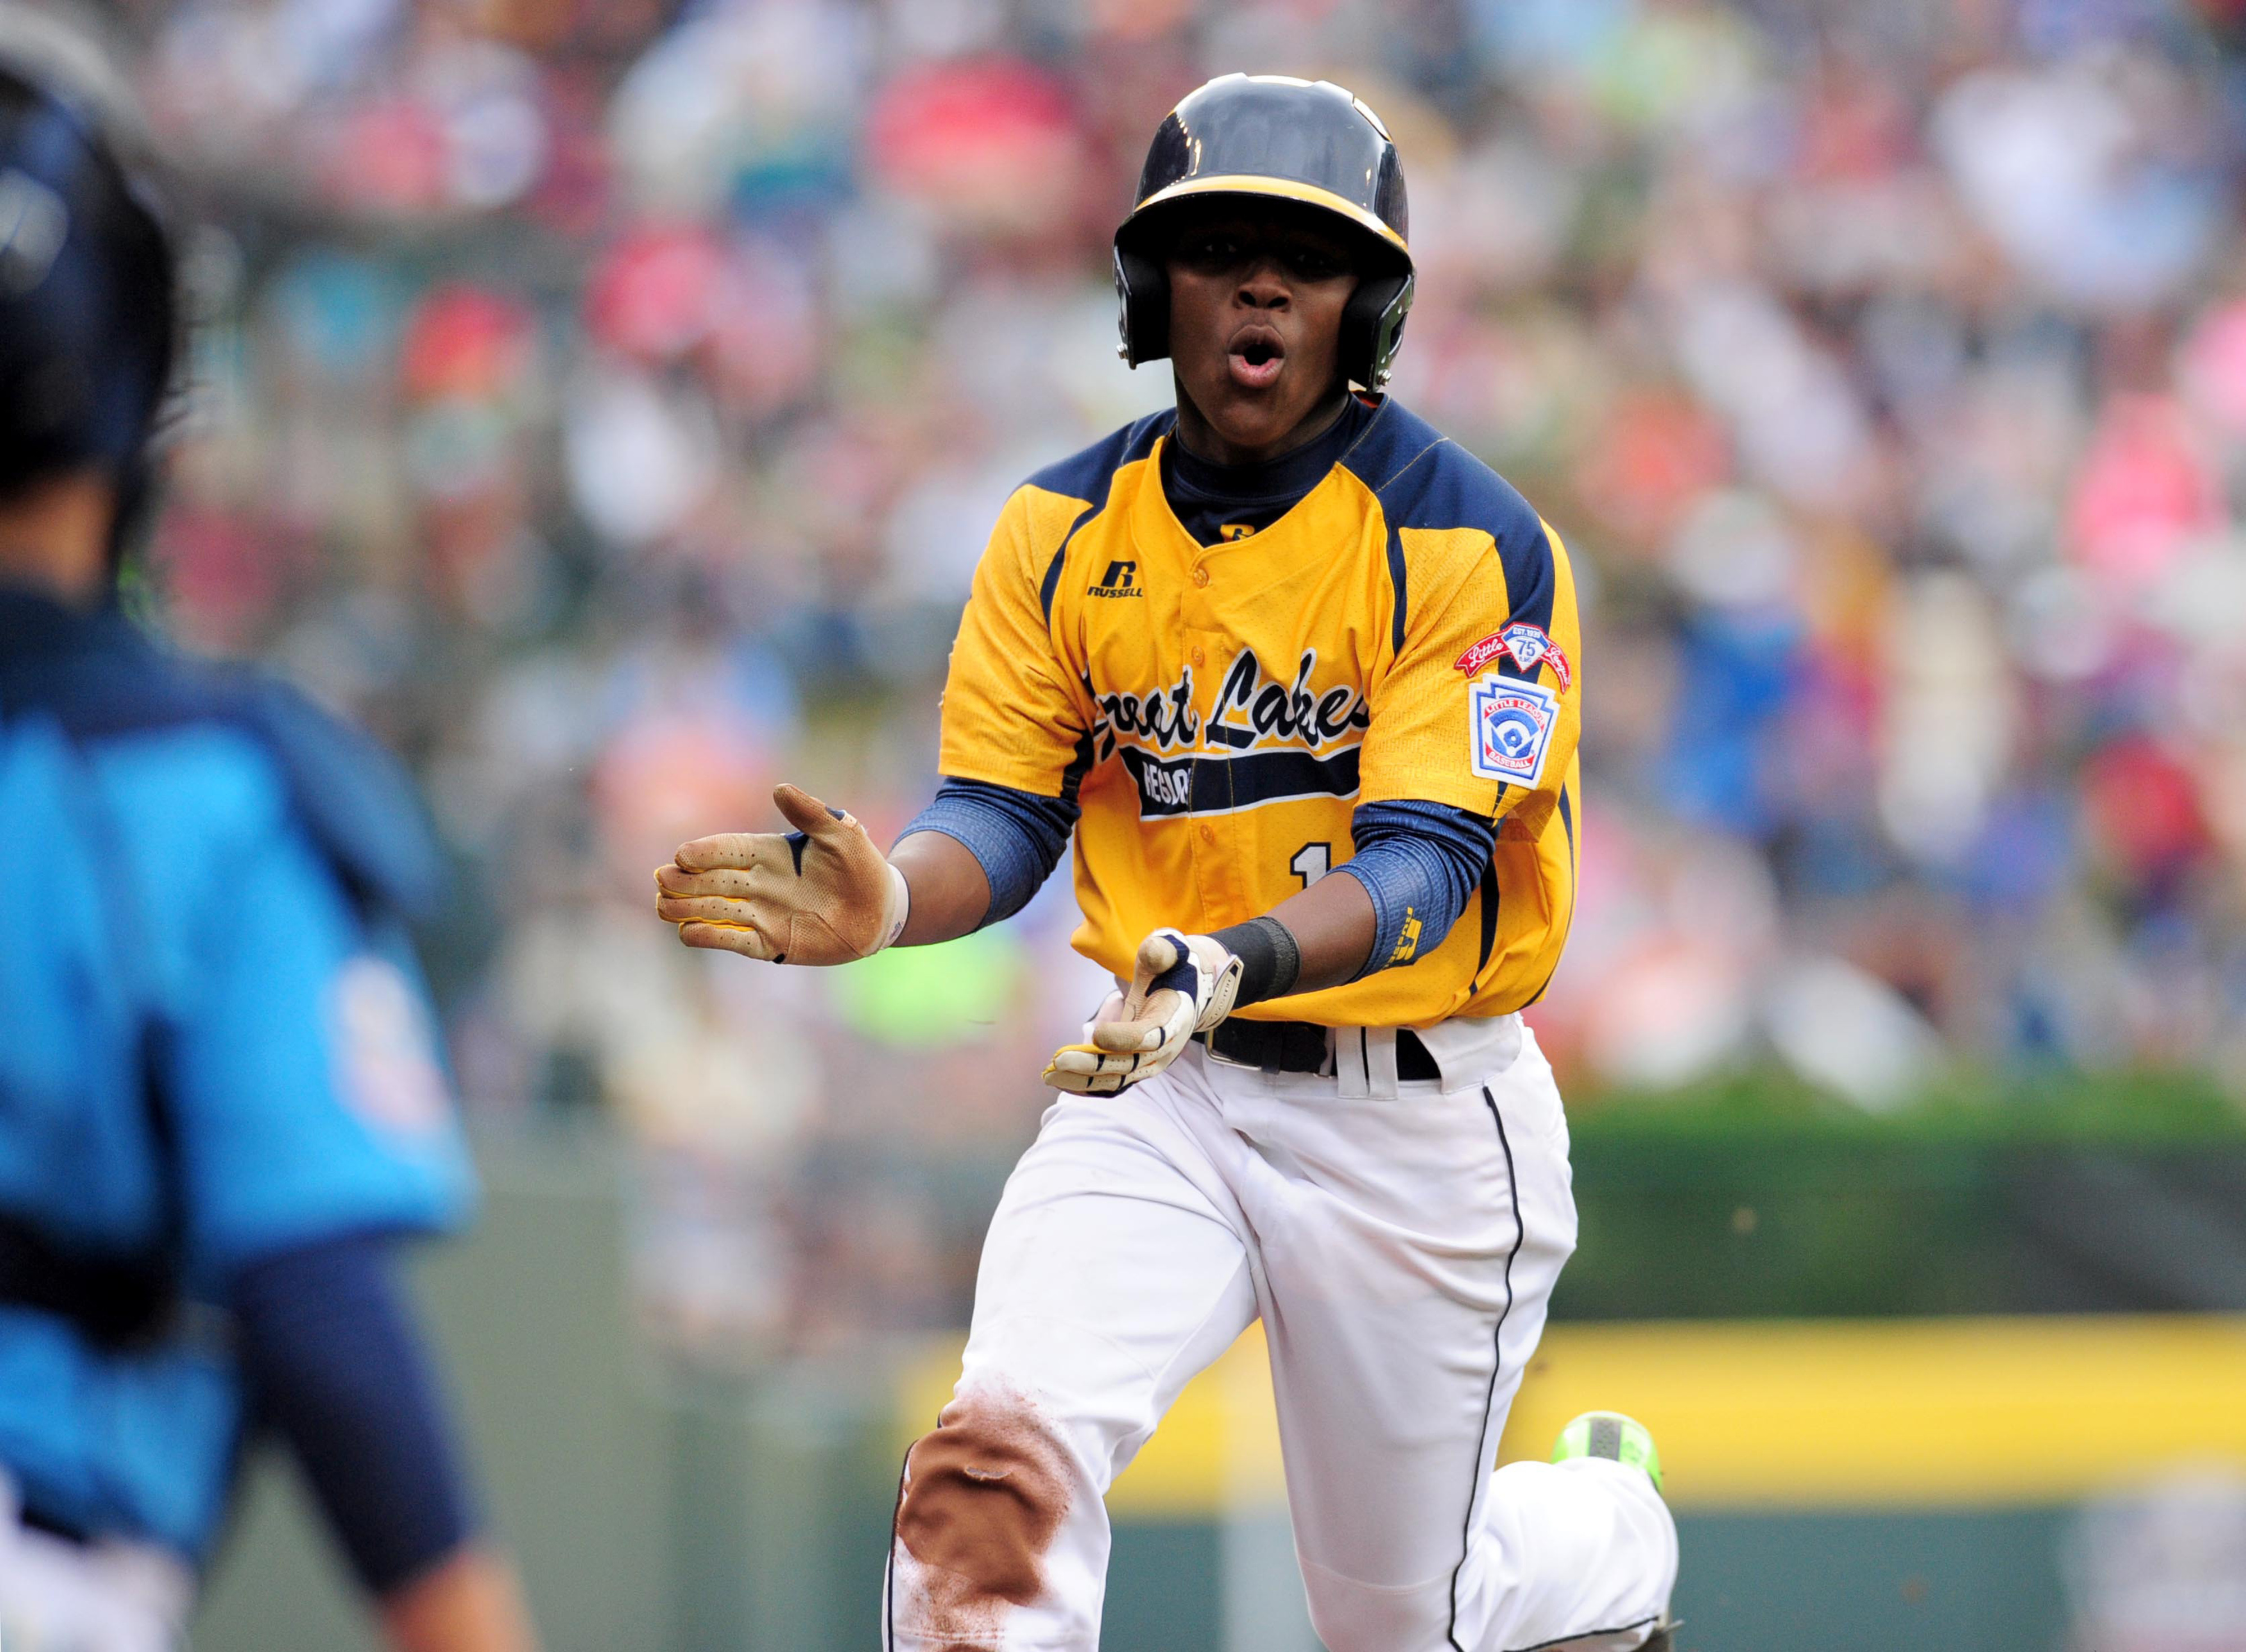 Little League World Series scores and bracket: South Korea, Chicago advance to Championship game